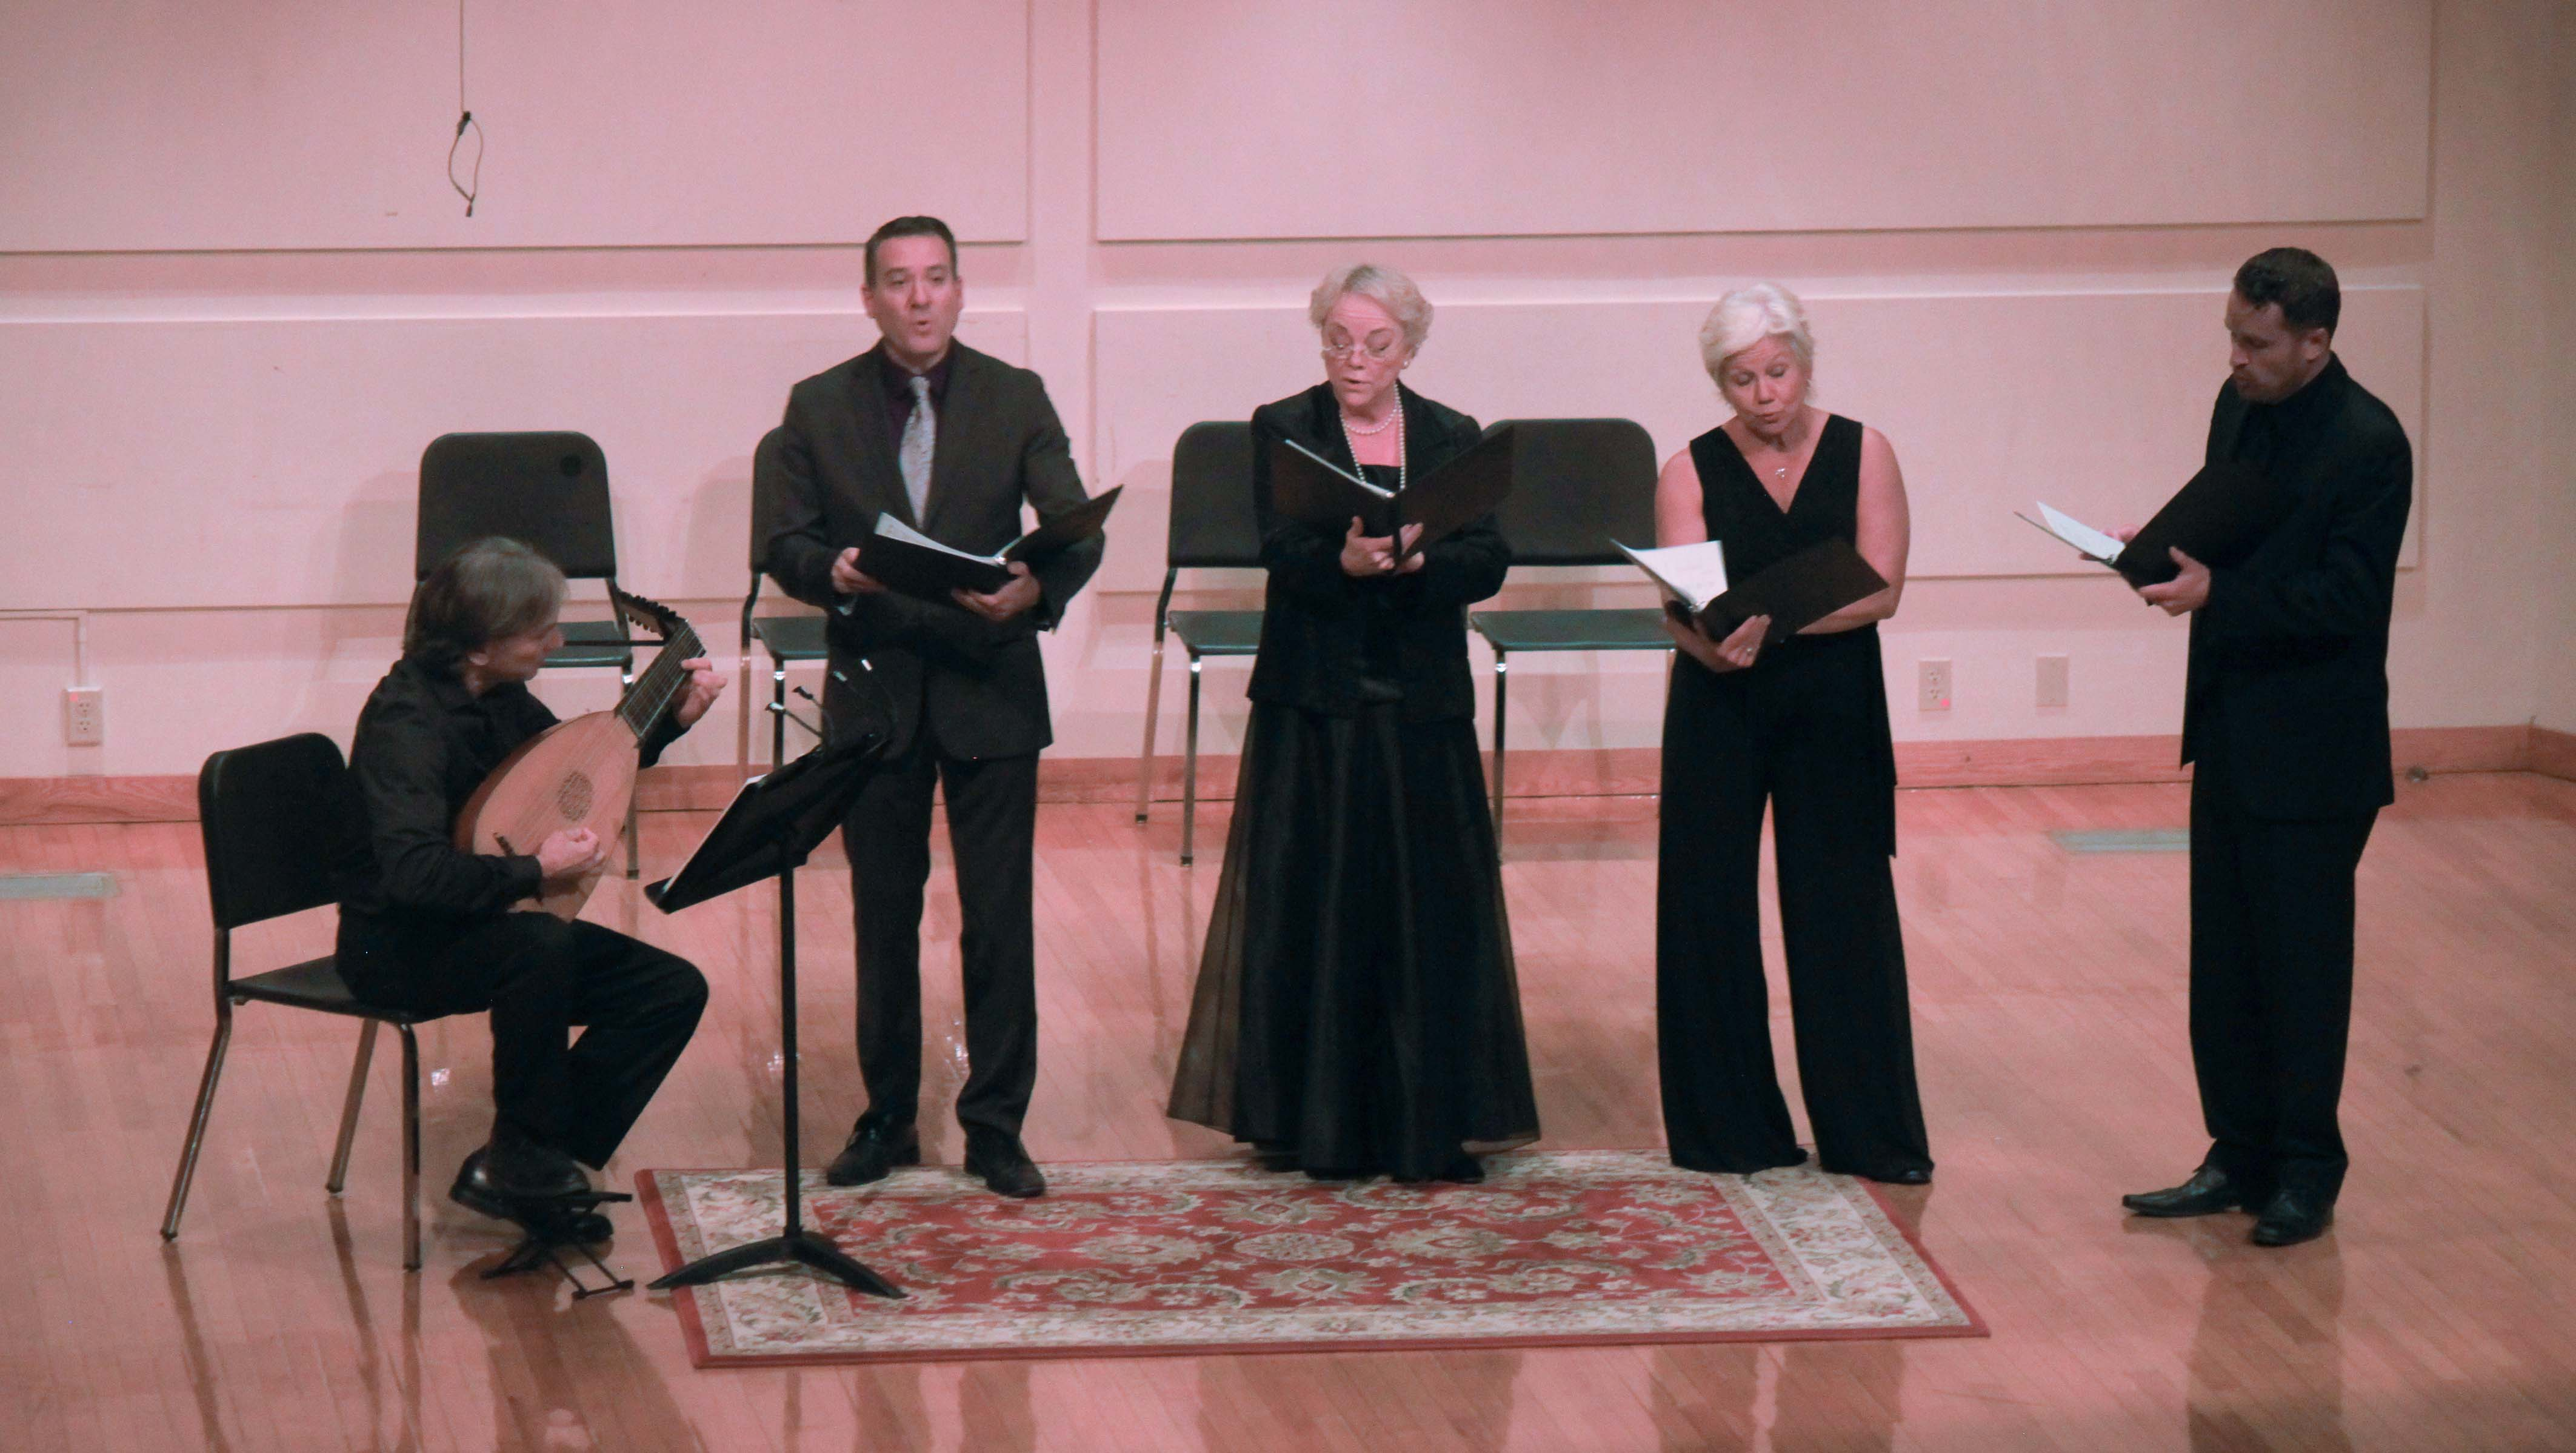 Faculty perform works composed by other faculty